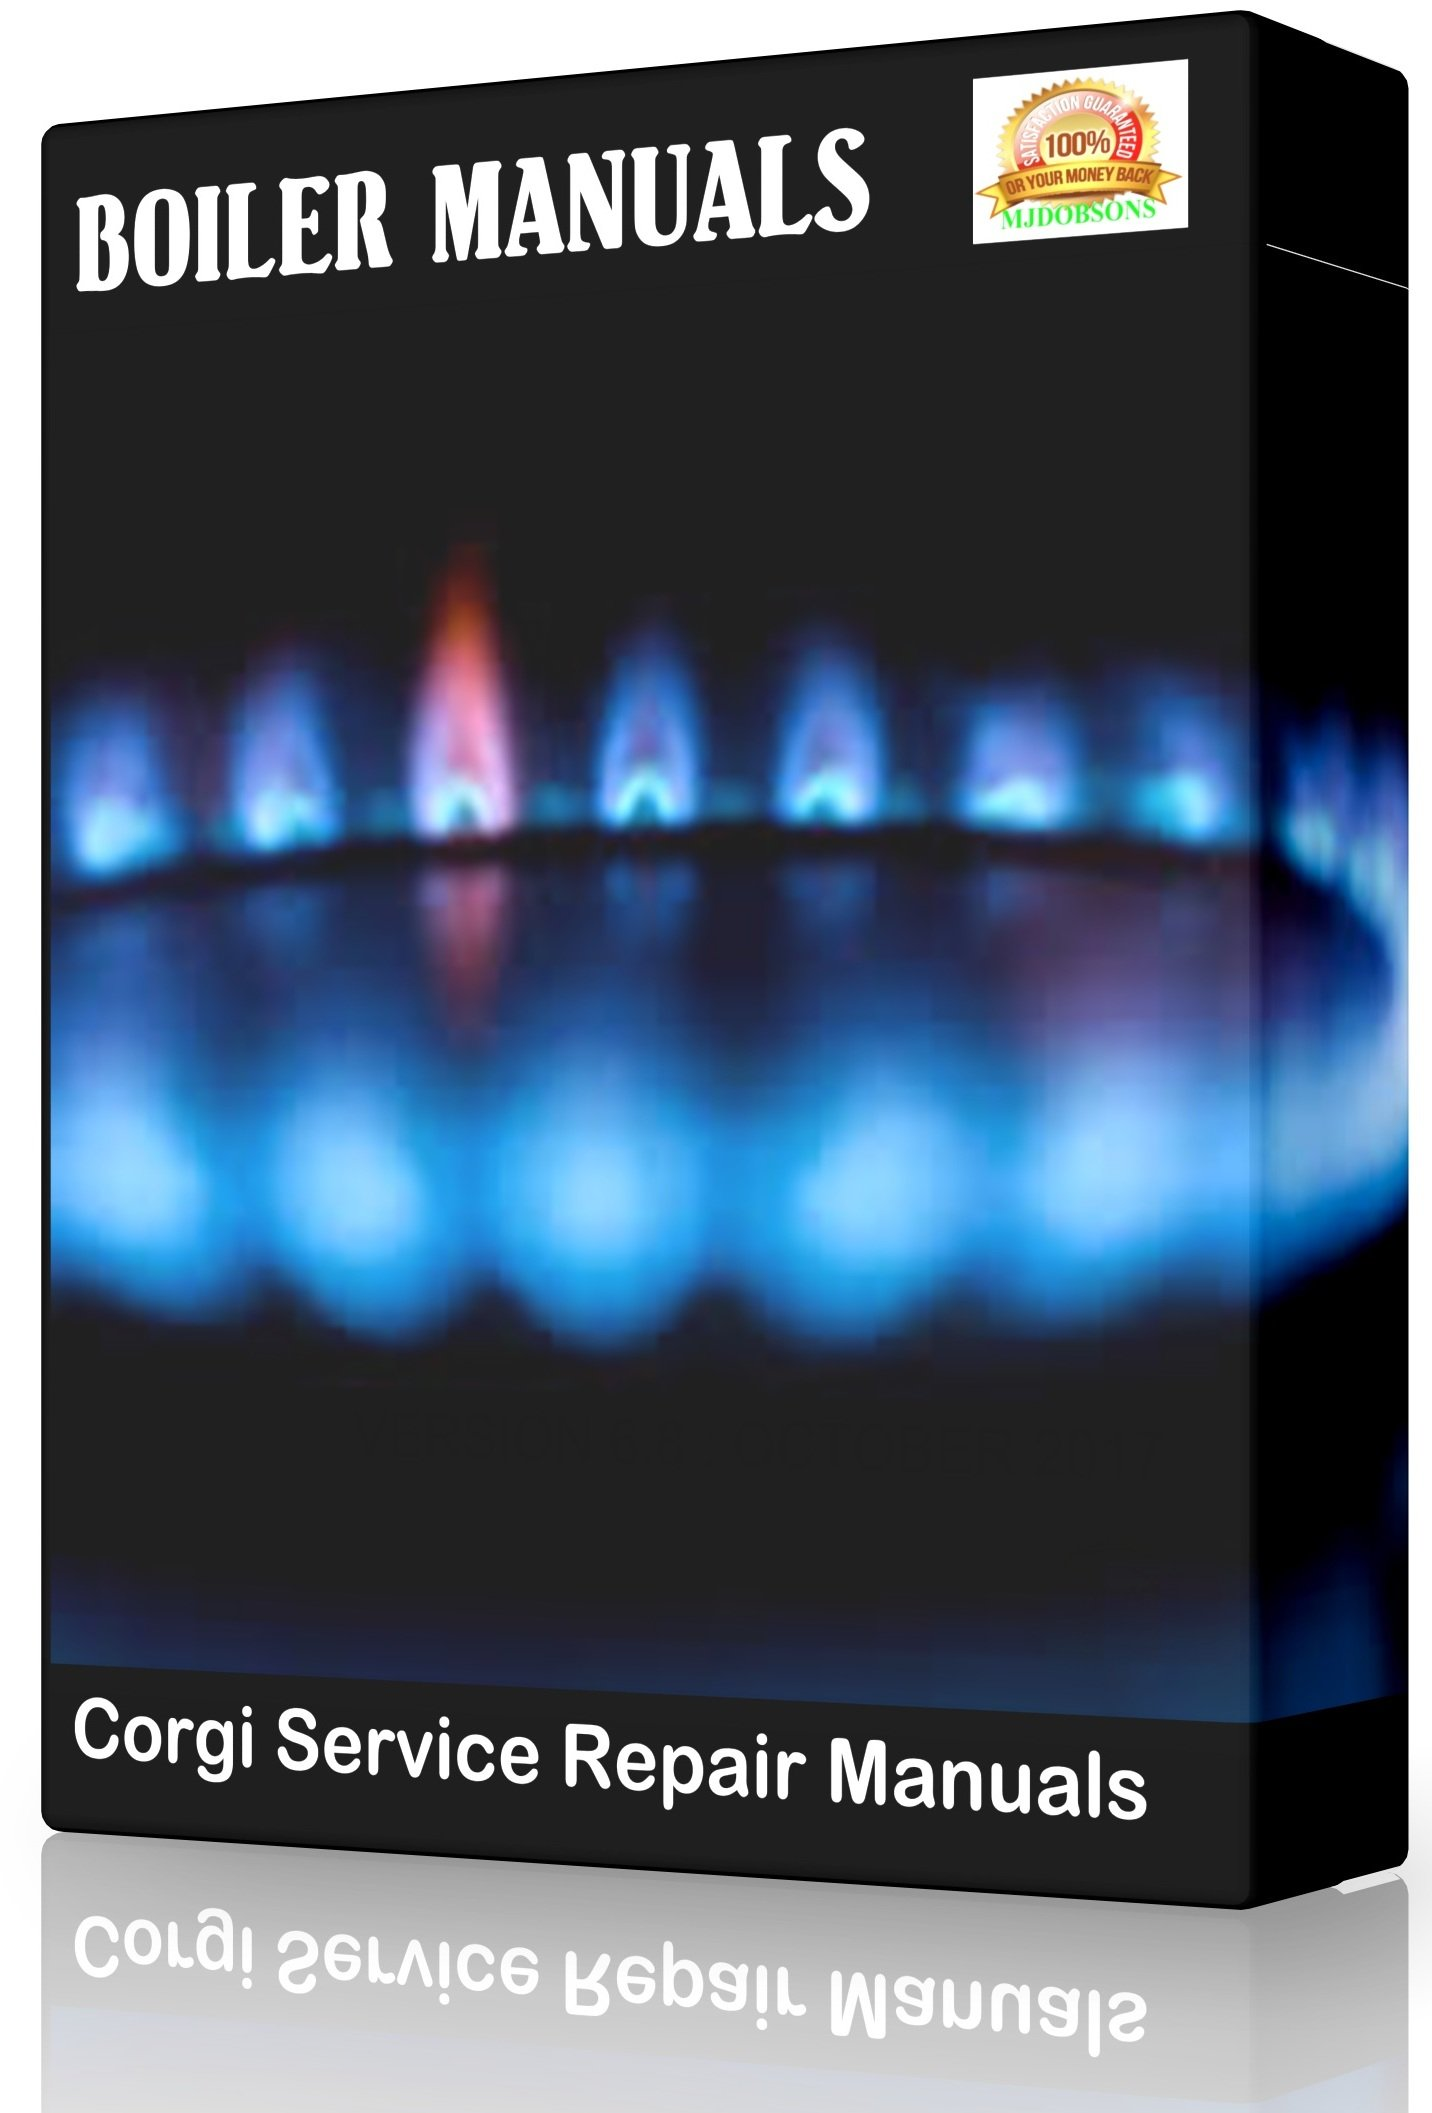 Boiler Corgi Service Repair Manuals Central Heating Plumbing Guide Download